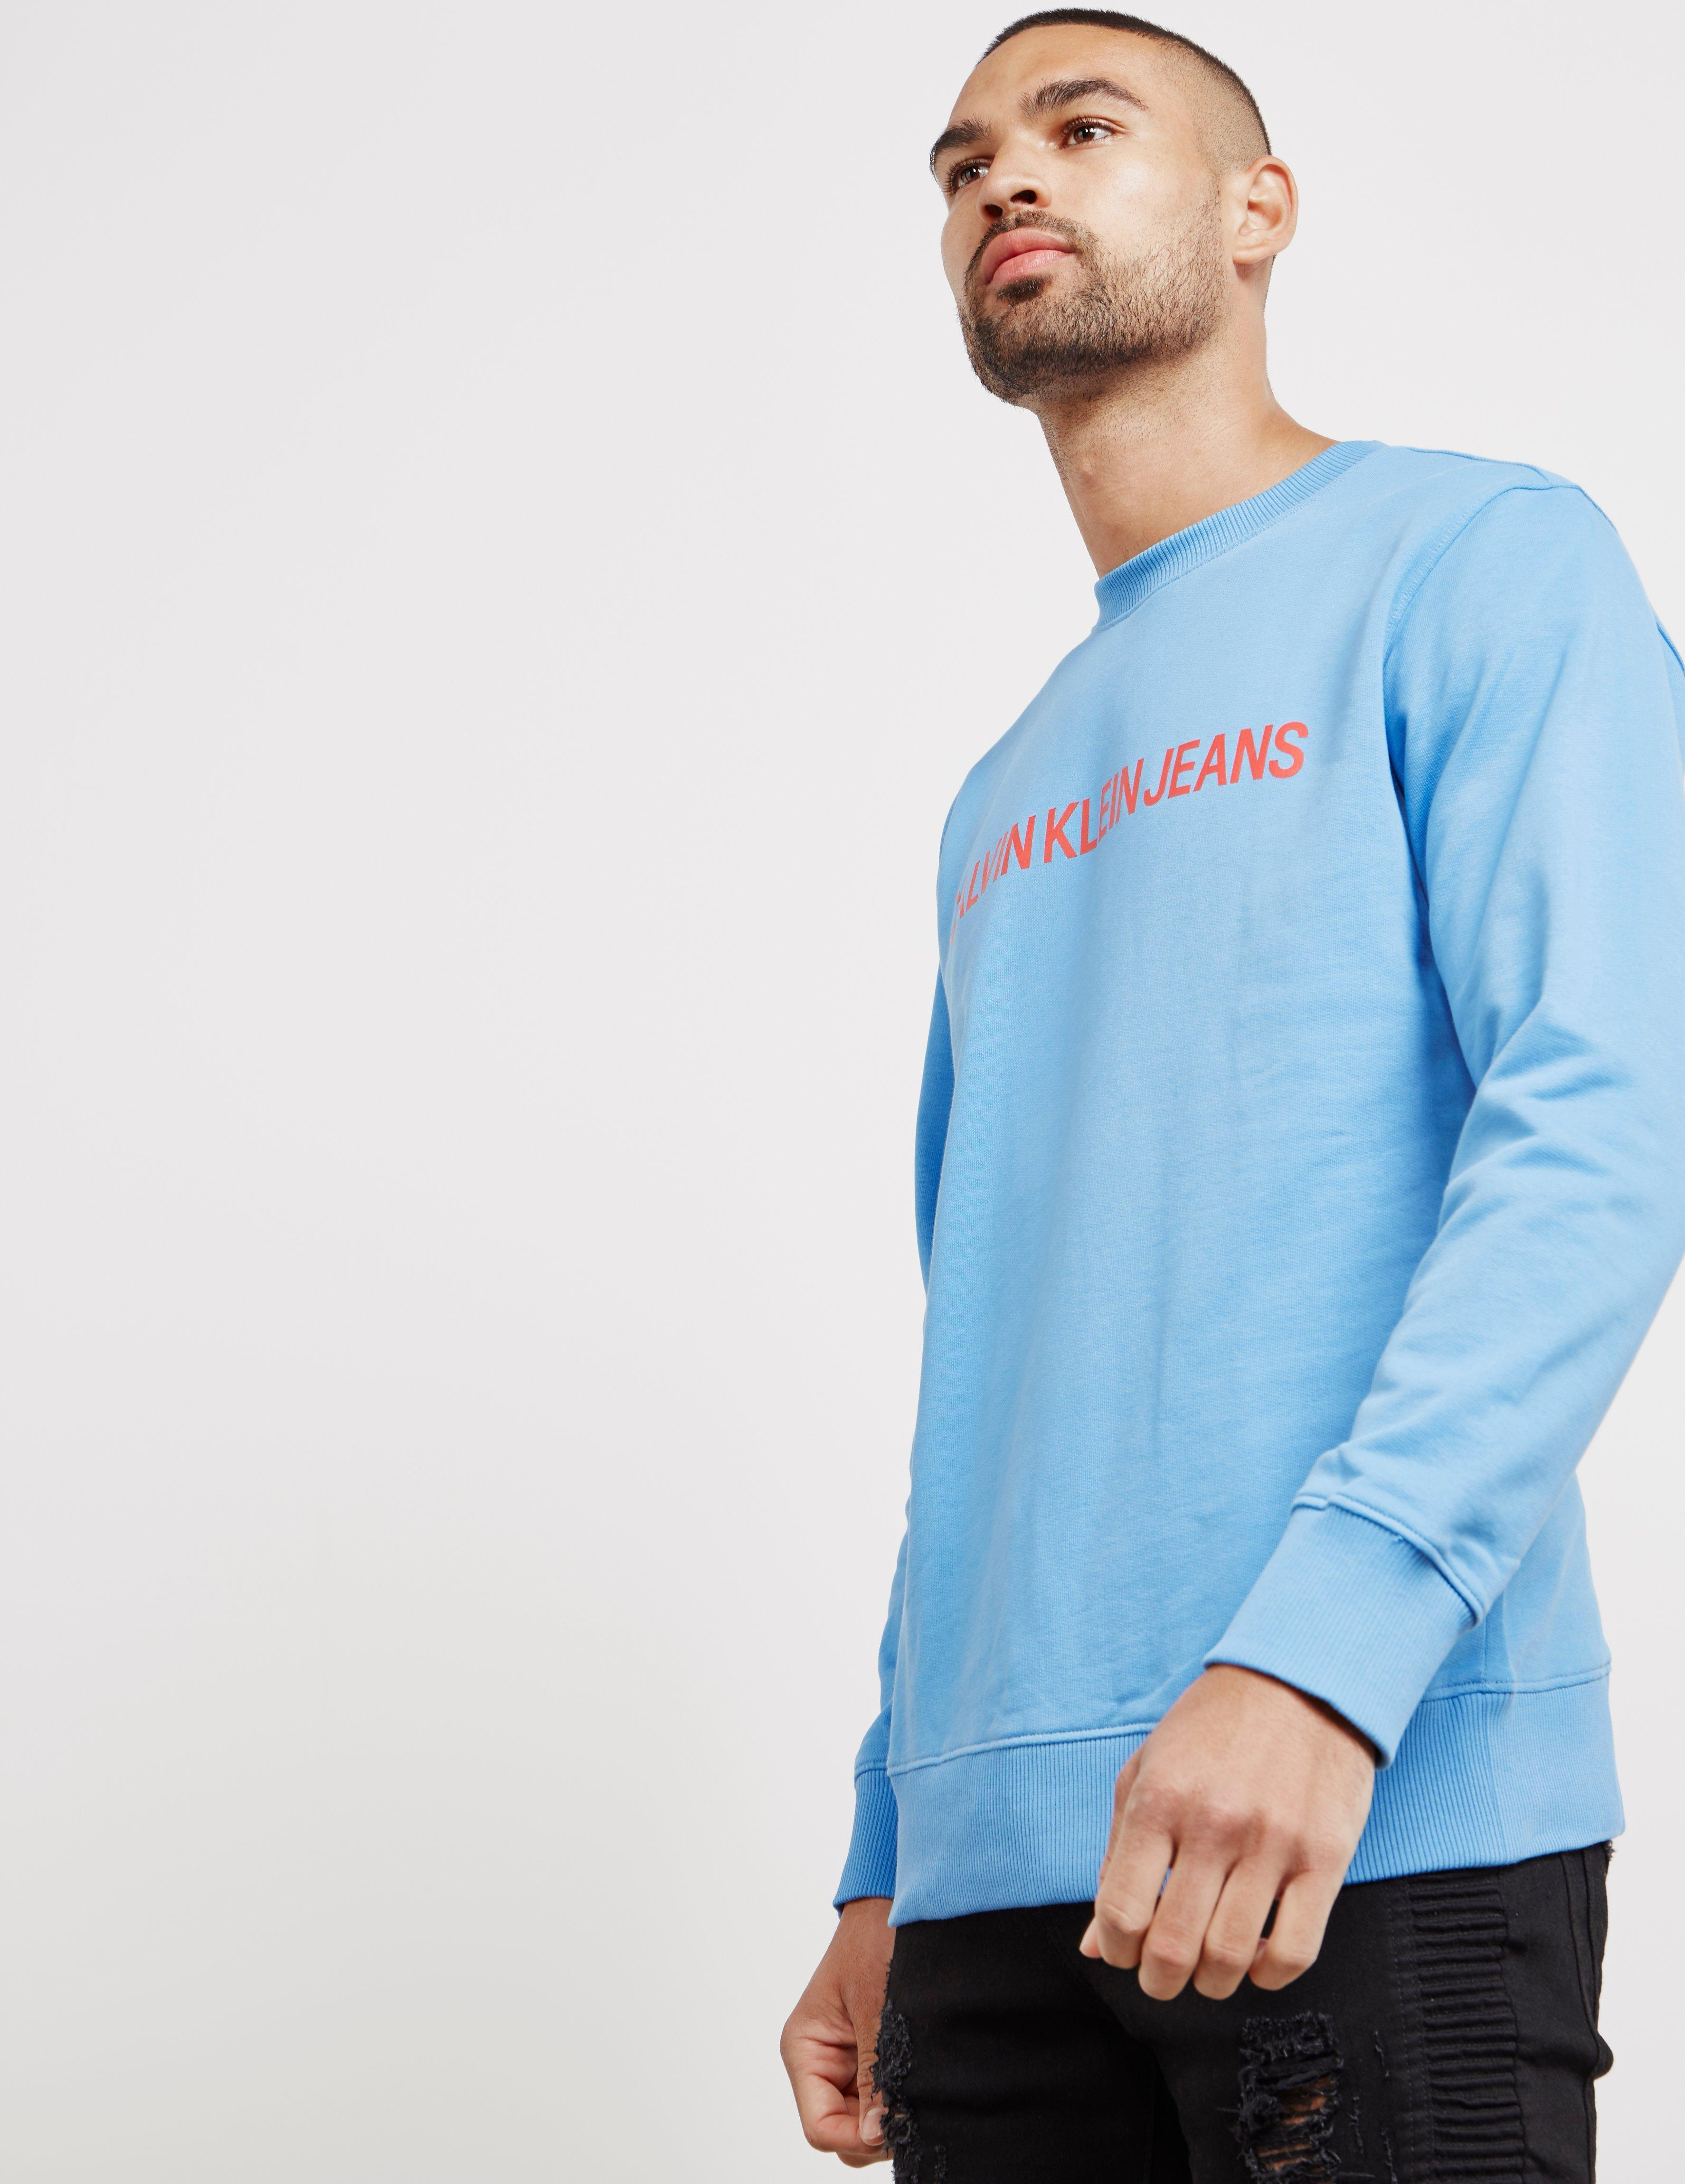 767be6d17ca6 Lyst - Calvin Klein Institutional Crew Sweatshirt Blue in Blue for ...